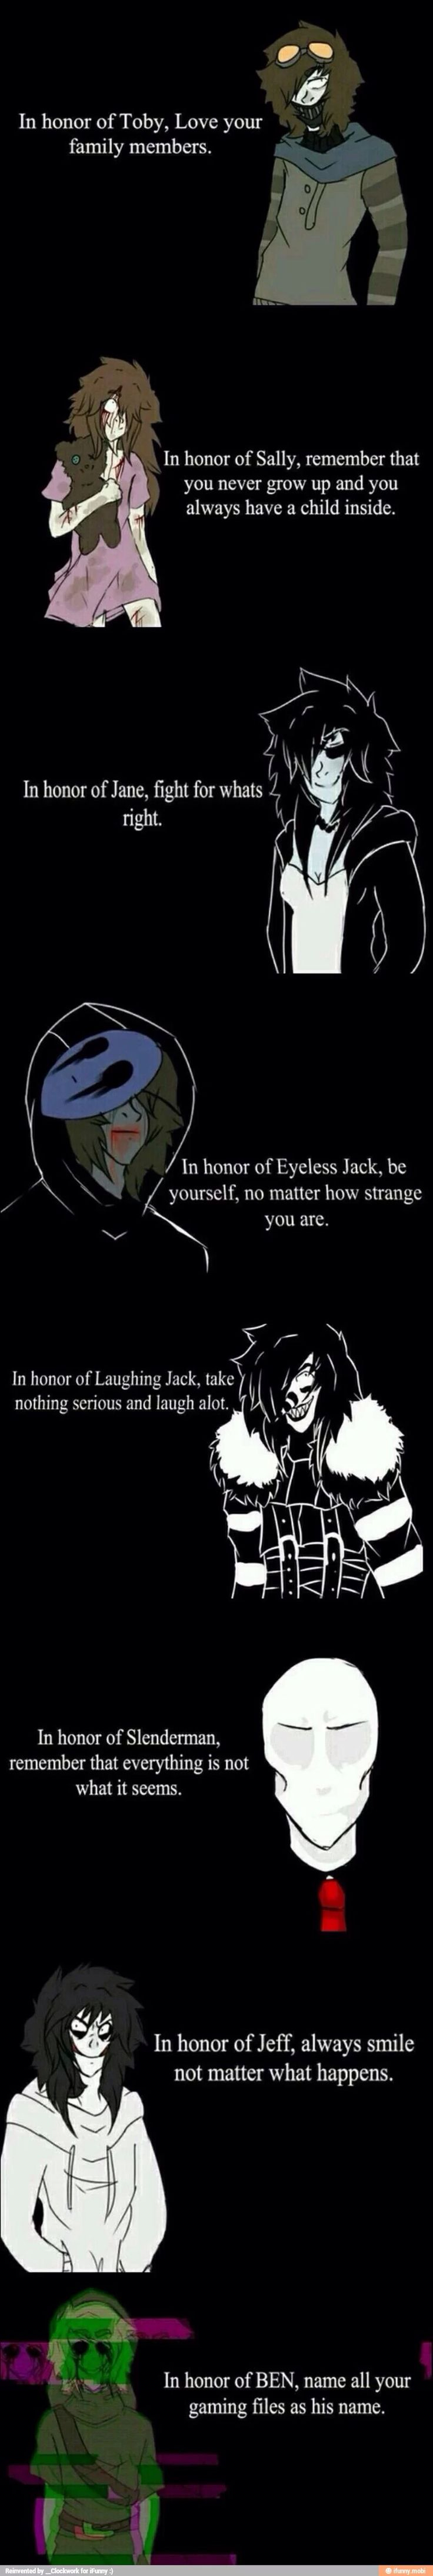 In honor of creepypasta